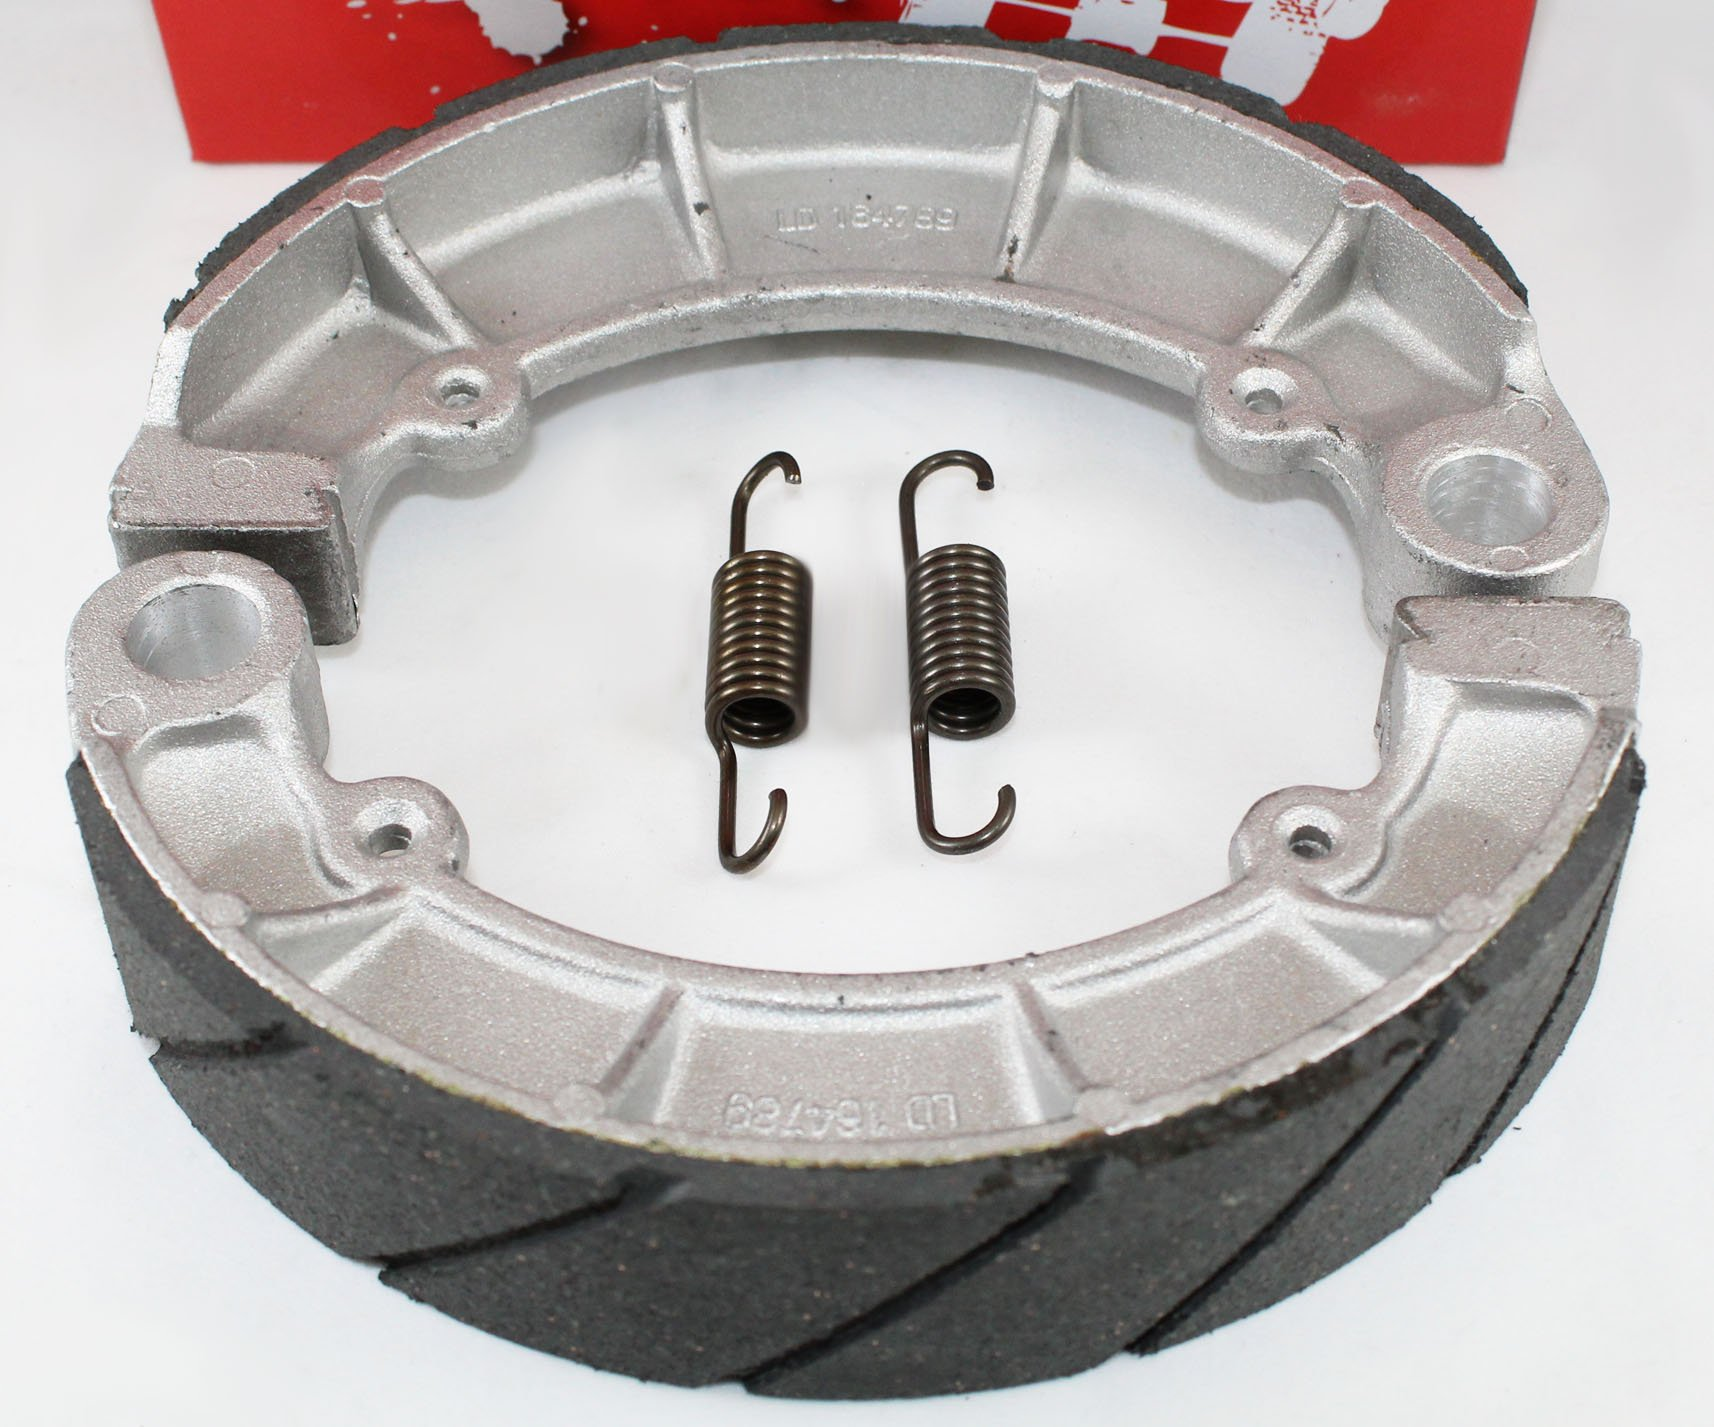 WATER GROOVED REAR BRAKE SHOES & SPRINGS for the Honda 2005-2013 TRX 500 Foreman Rubicon